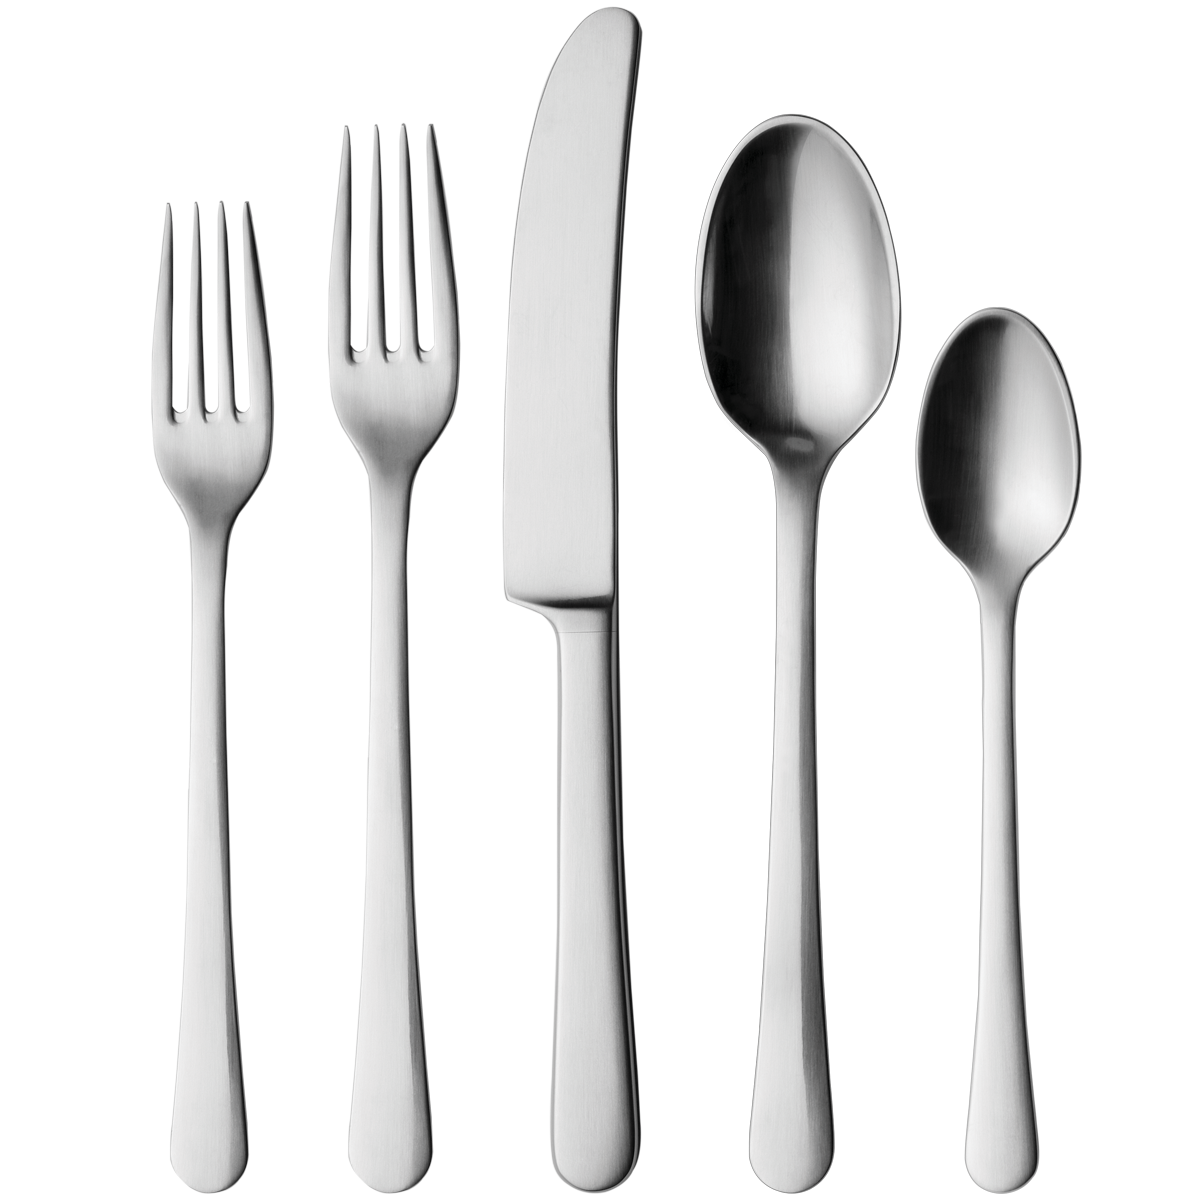 Purple clipart spoon. Download silverware free png